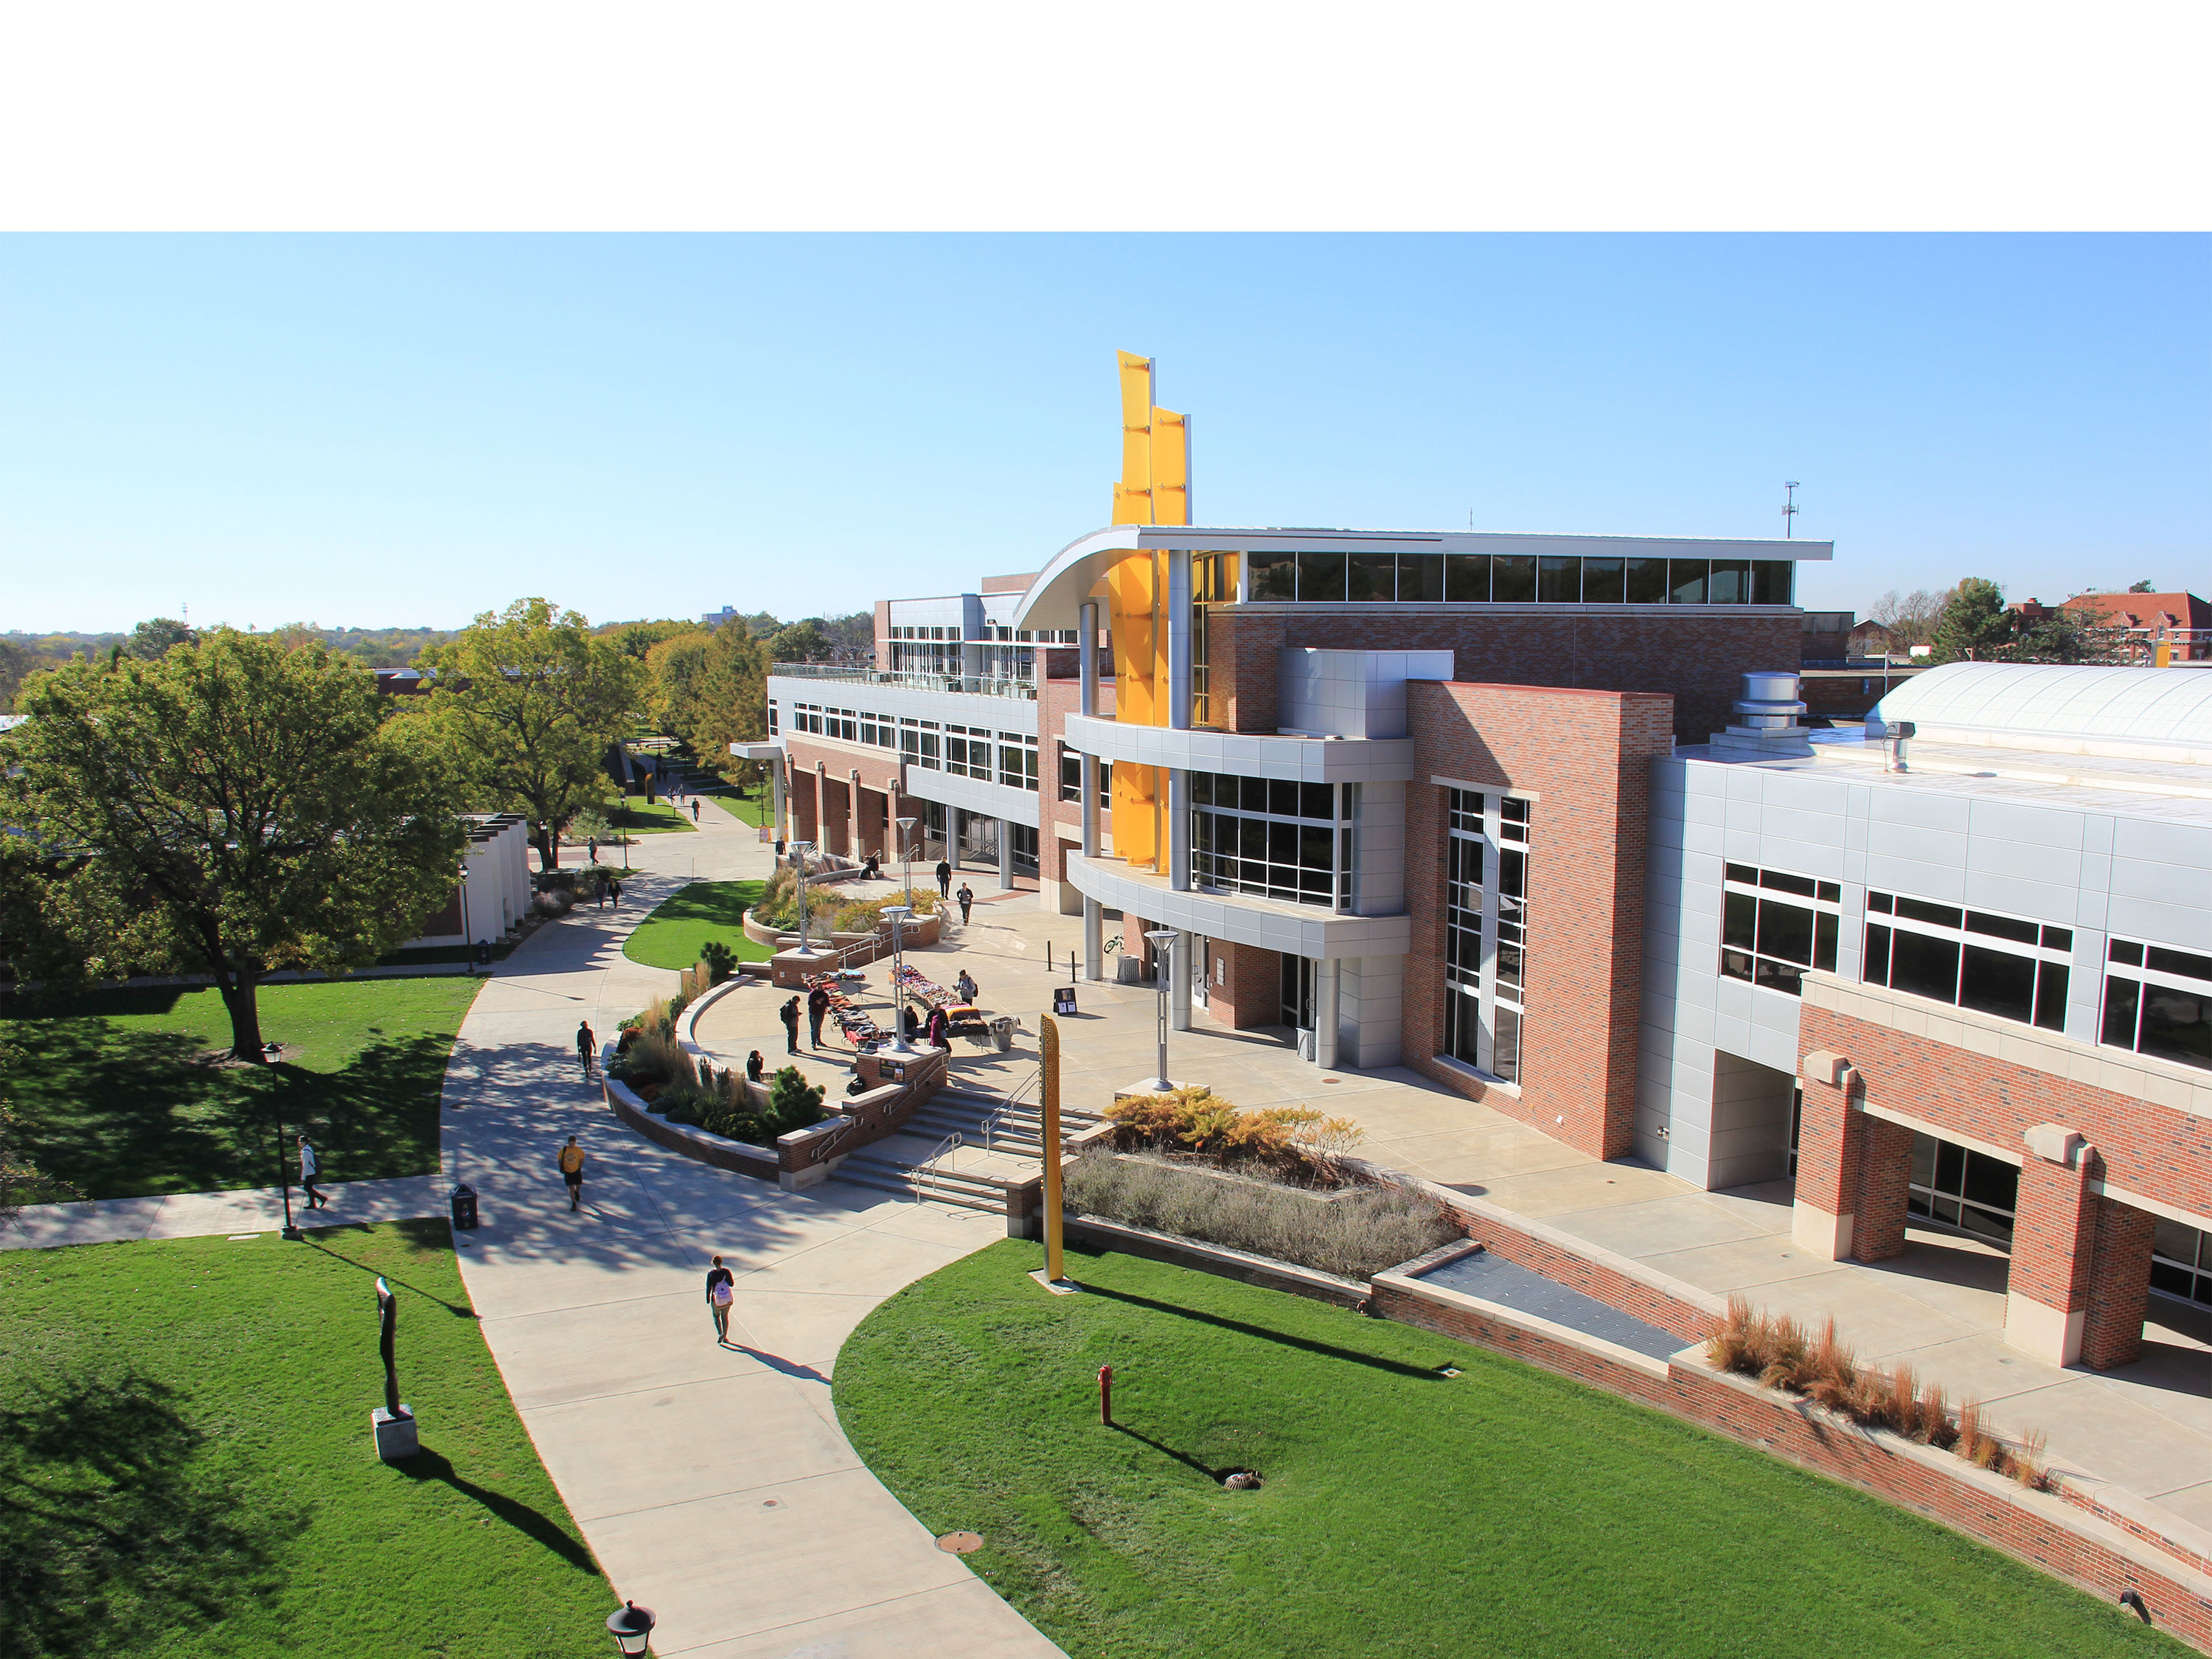 A view of the Rhatigan Student Center at Wichita State University.